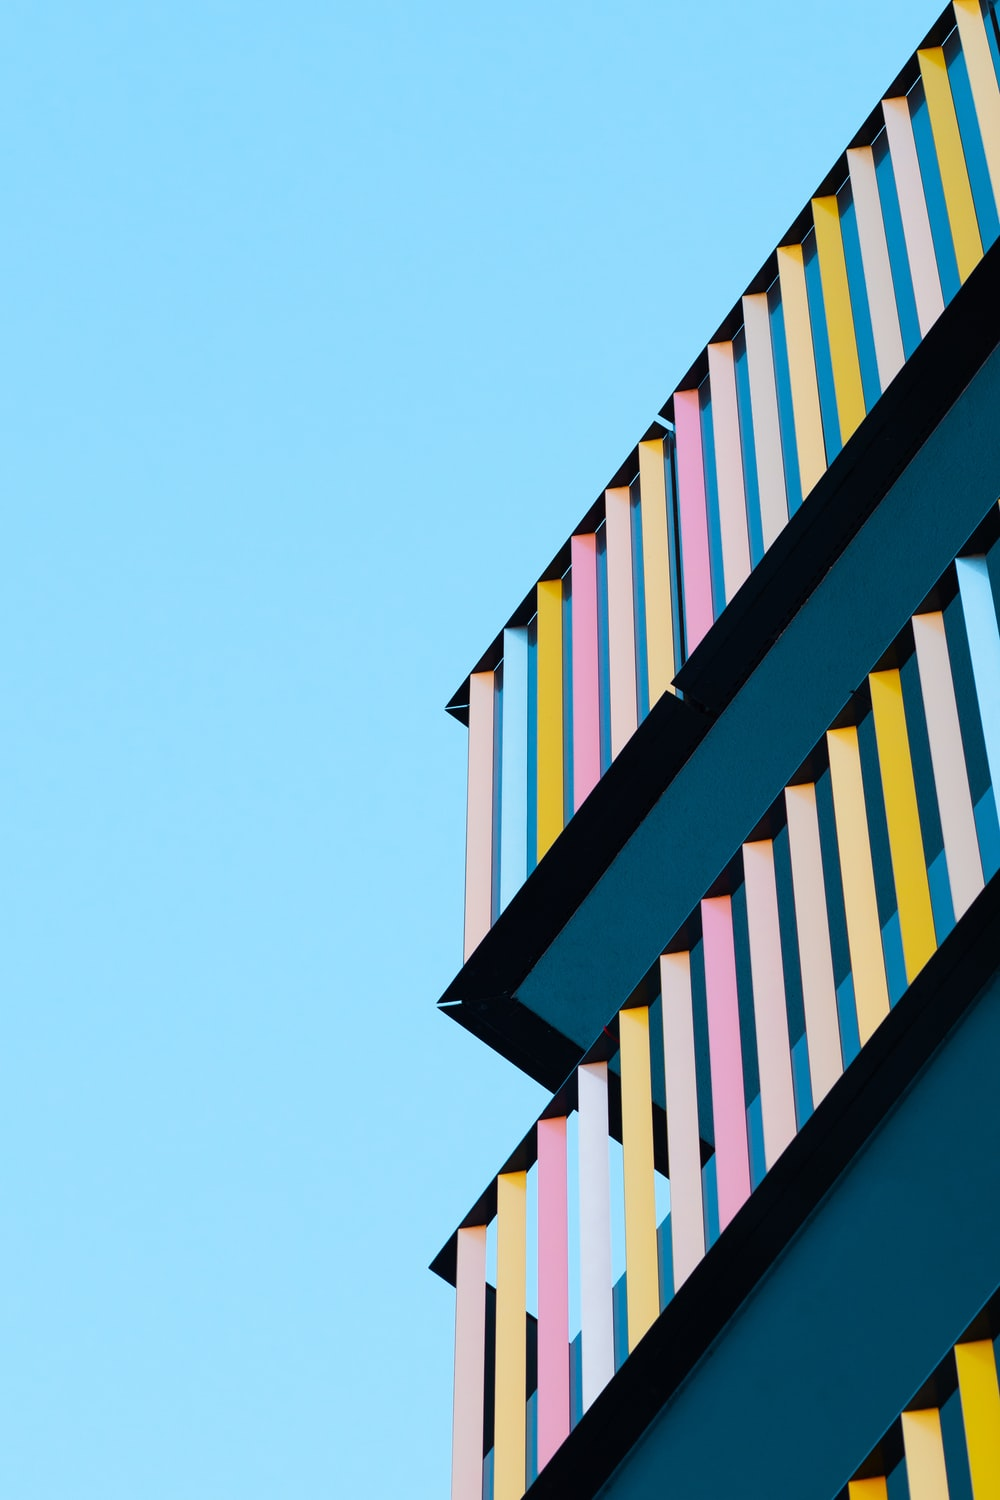 blue and white striped building